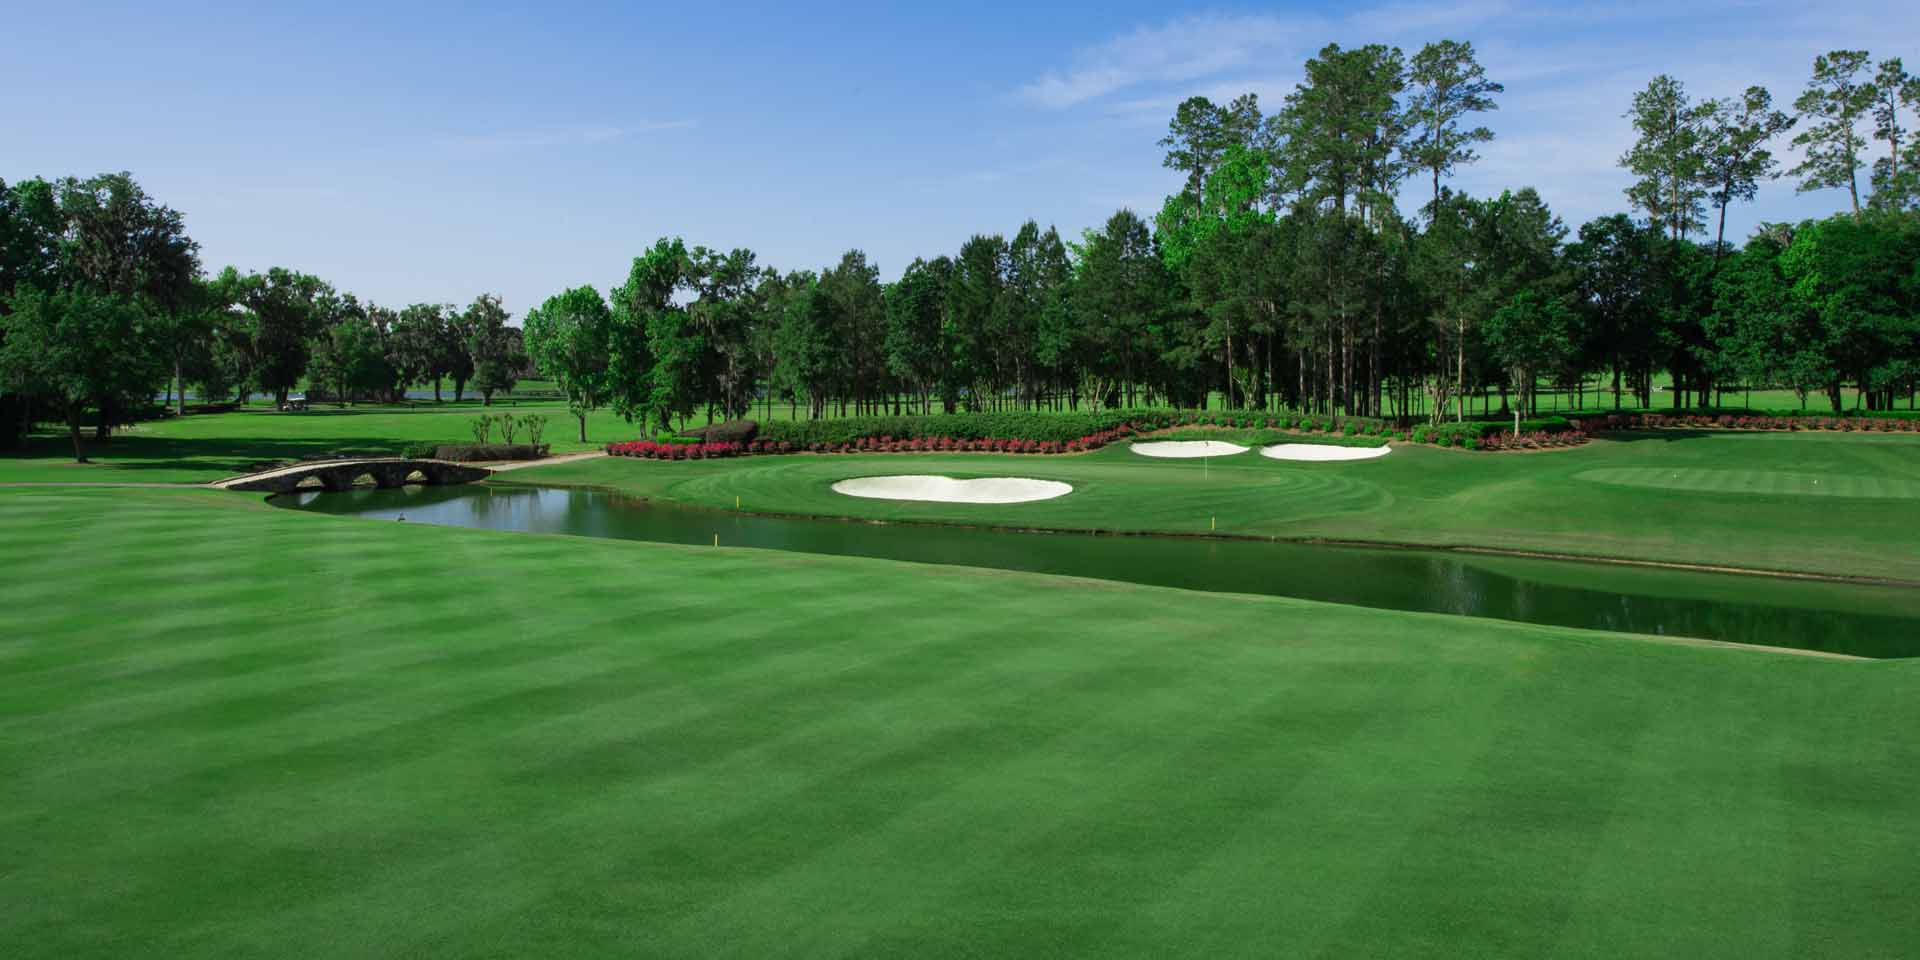 Neat golden ocala golf image here, check it out